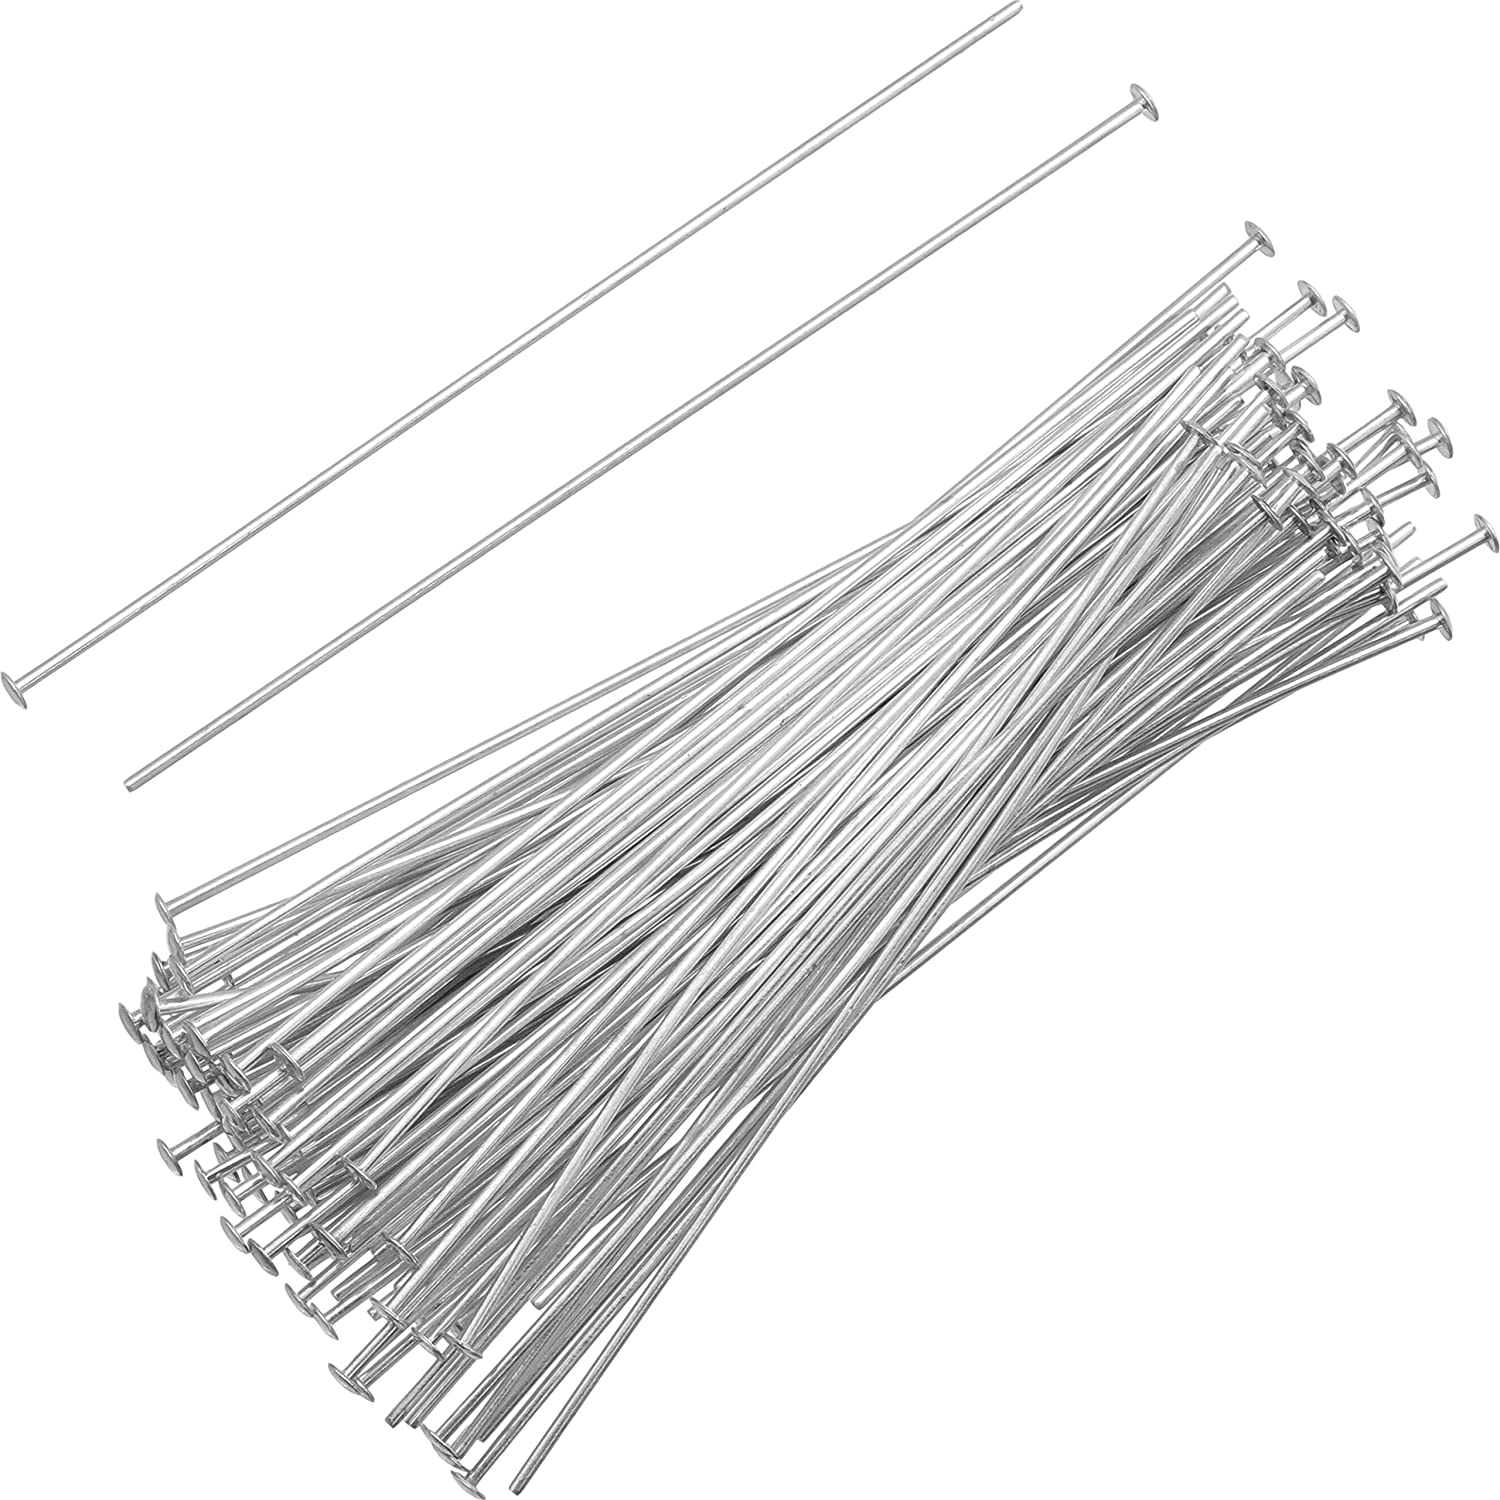 Sterling Silver 22 Gauge 2 Inch Headpin 100 Count